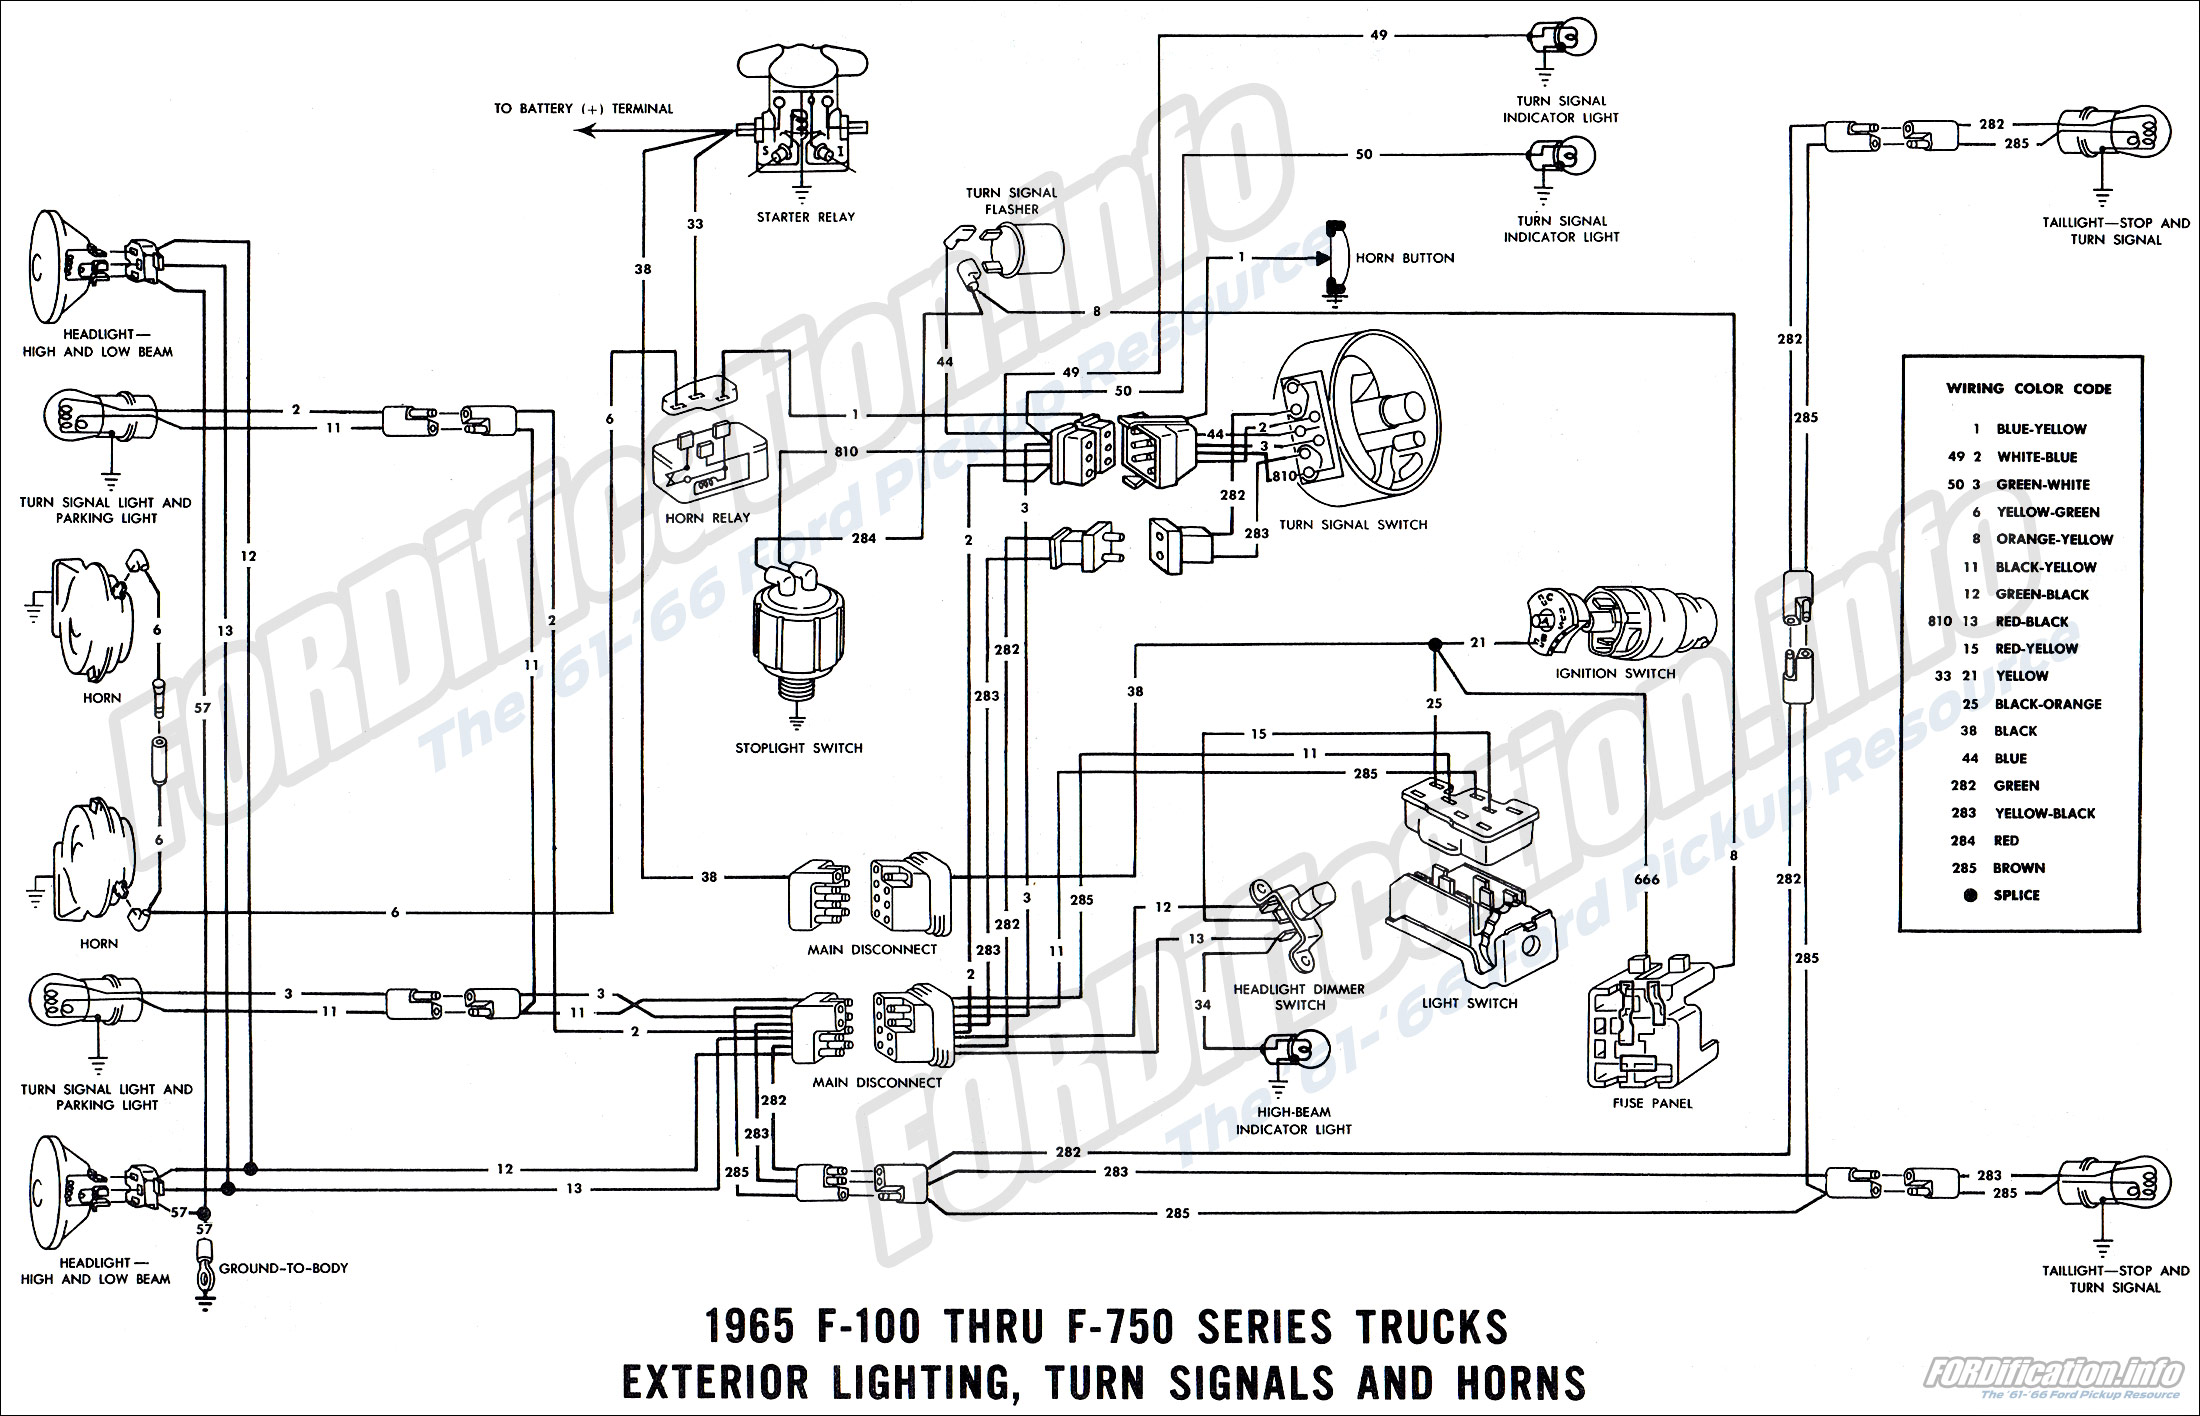 1965 ford truck wiring diagrams fordification info the 57 Ford Truck 57 Ford Truck